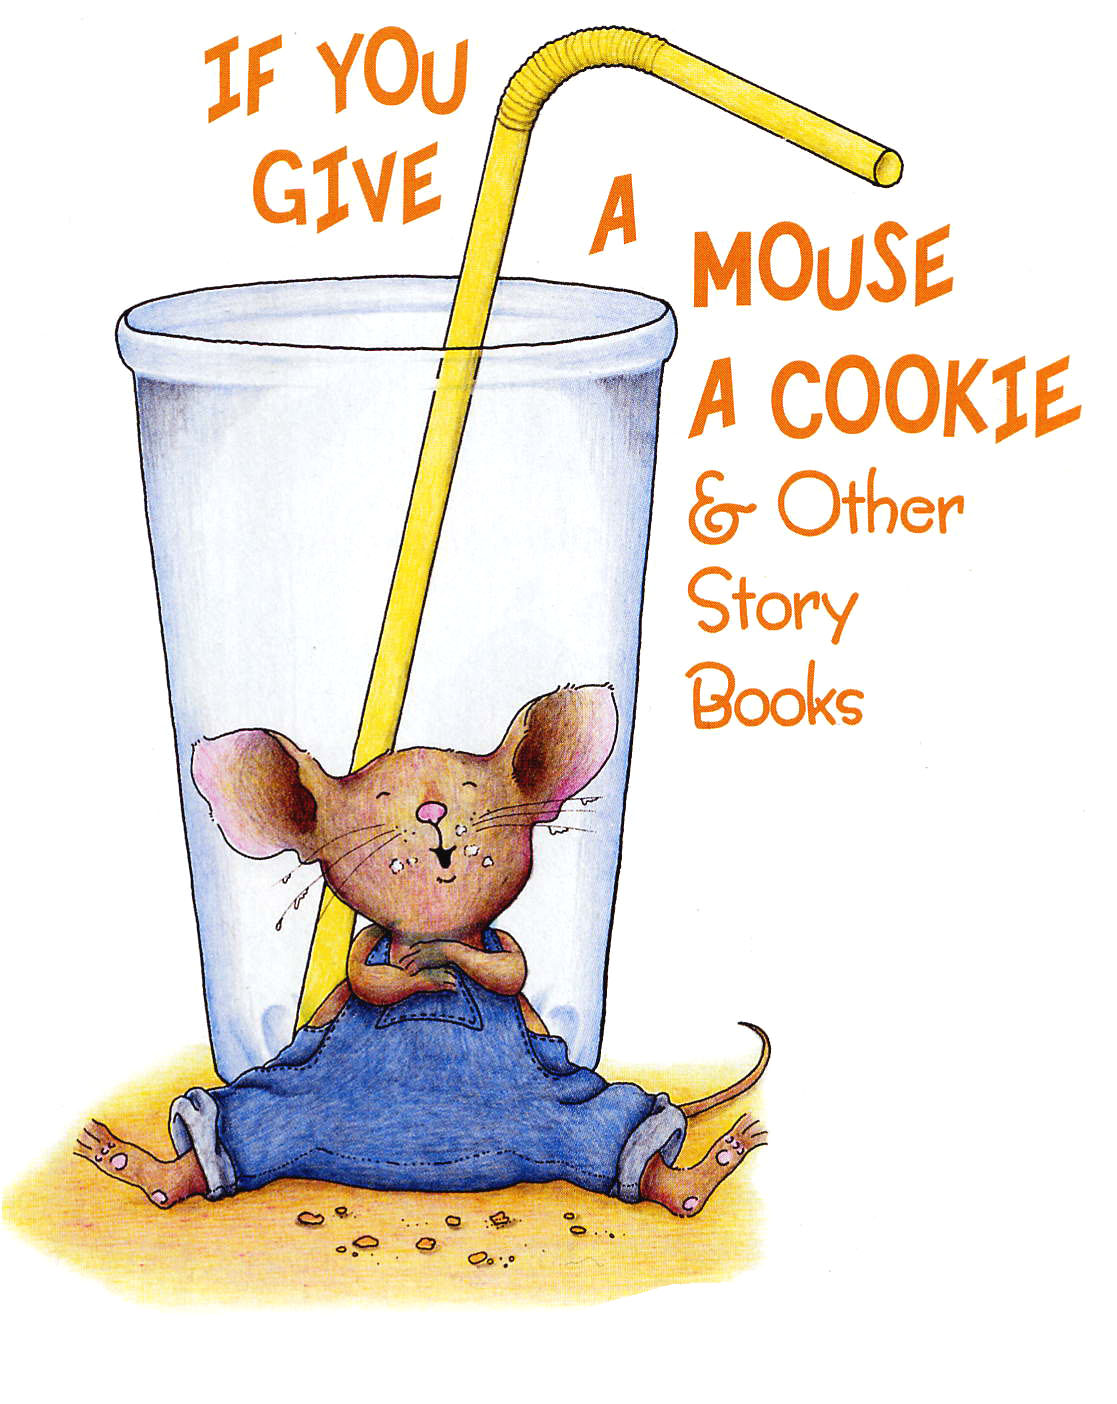 Pgh Momtourage: If You Give A Mouse A Cookie